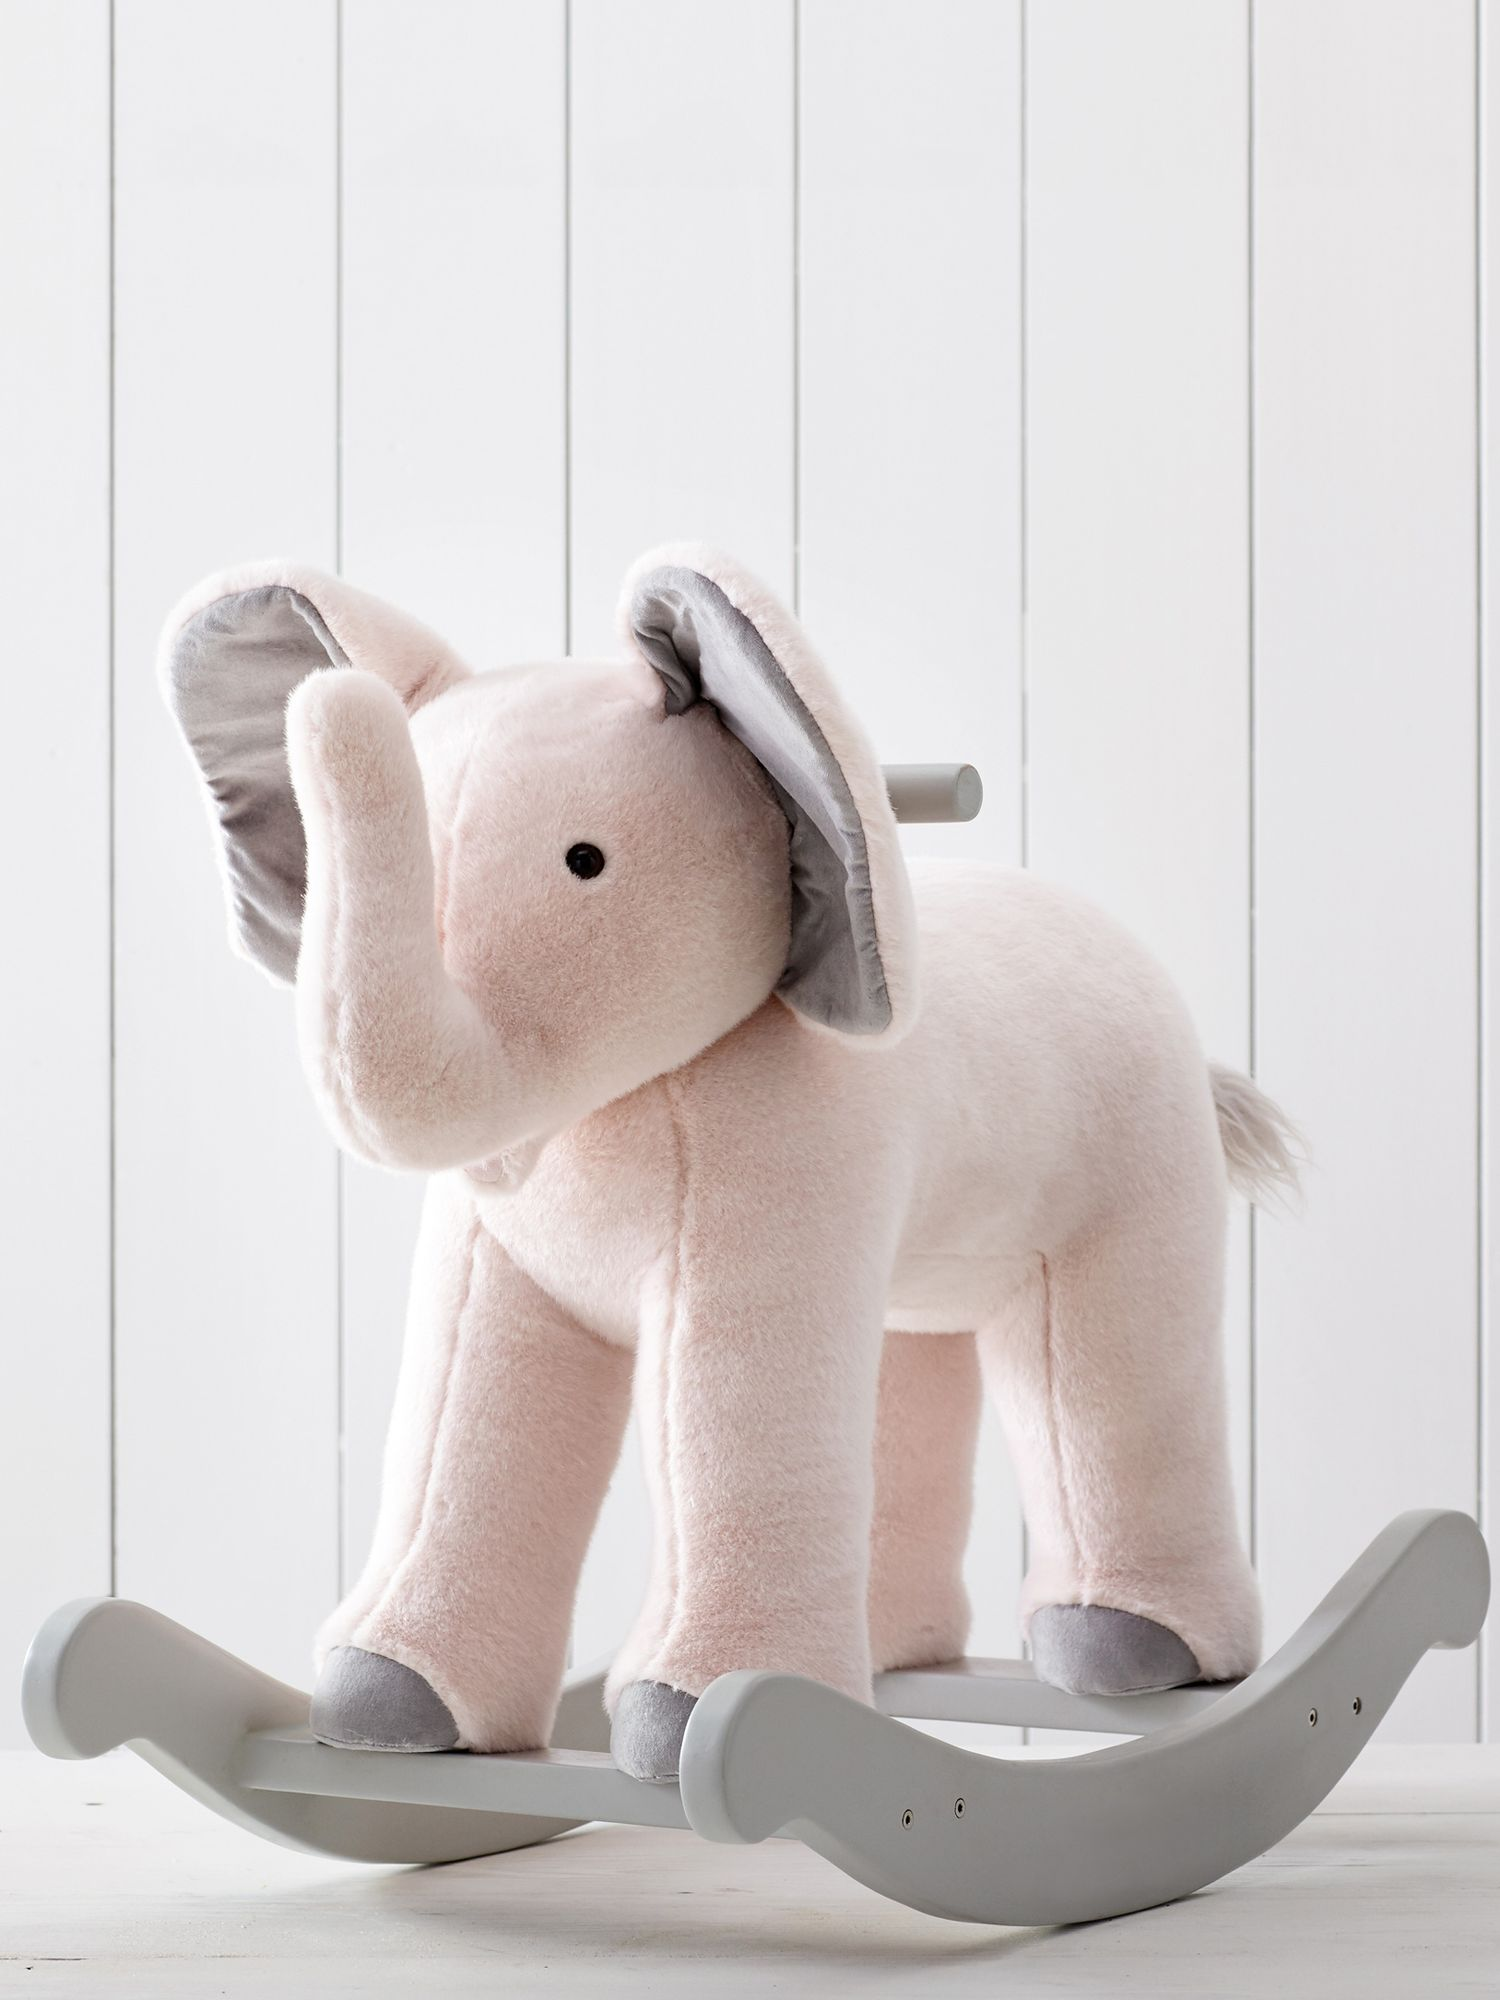 Pottery Barn Kids Monique Lhuillier Plush Rocking Elephant At John Lewis Partners